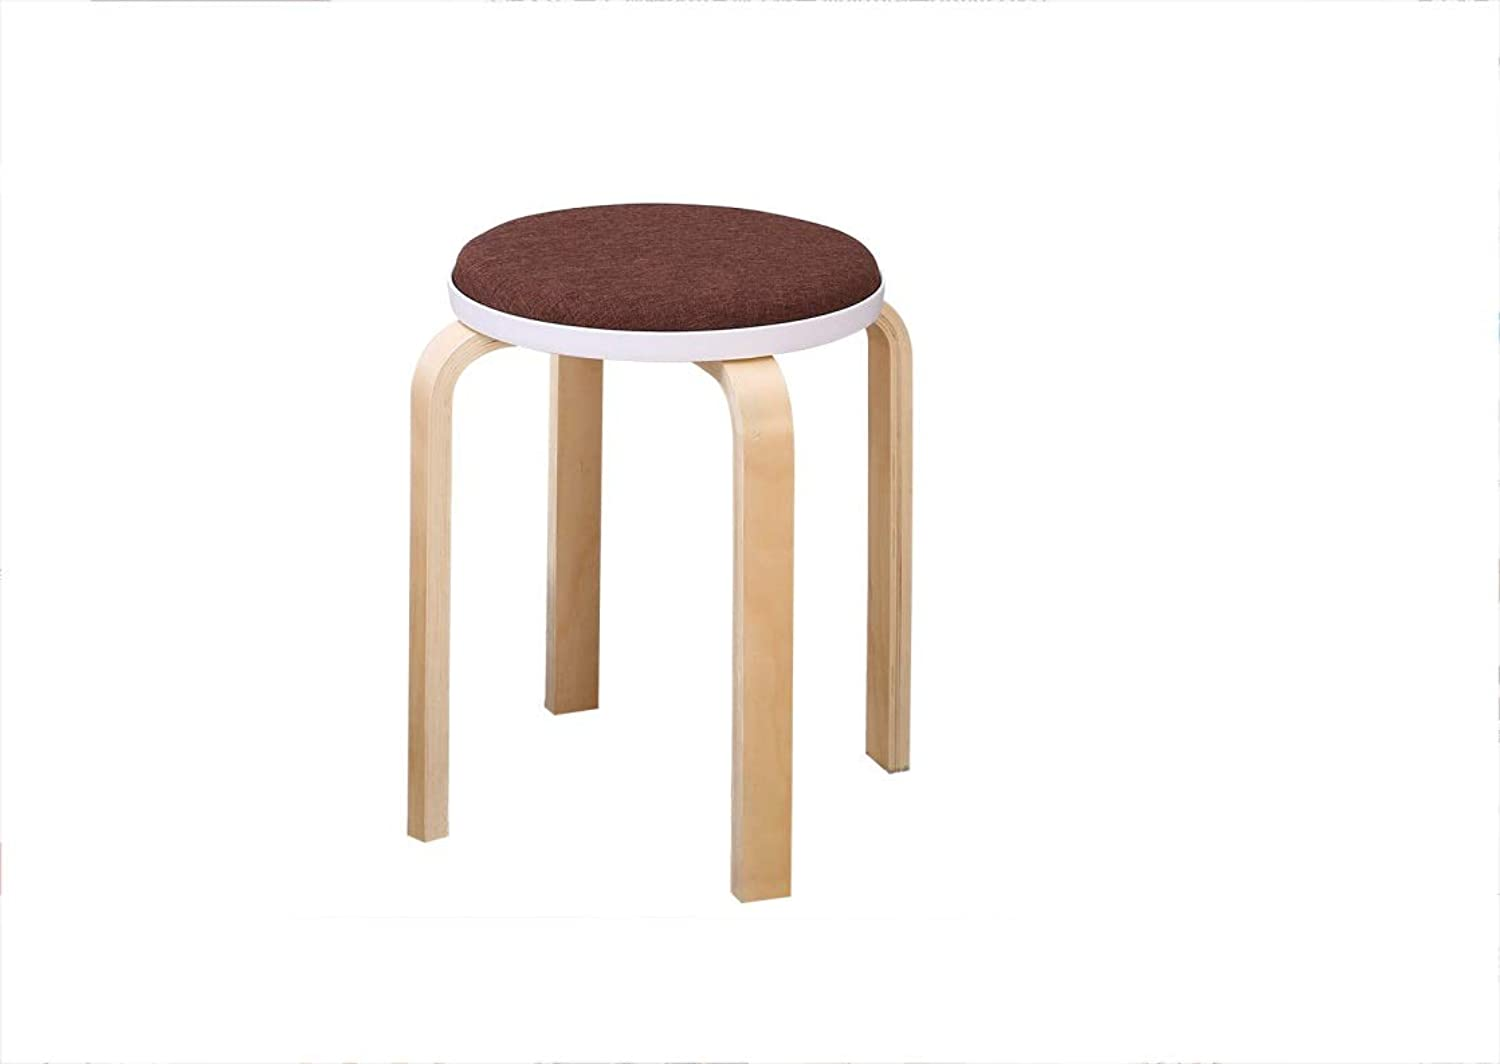 Stool Family Dining Chair Stool Solid Wood Stool for shoes Bench 38  47  32cm (color   Brown)